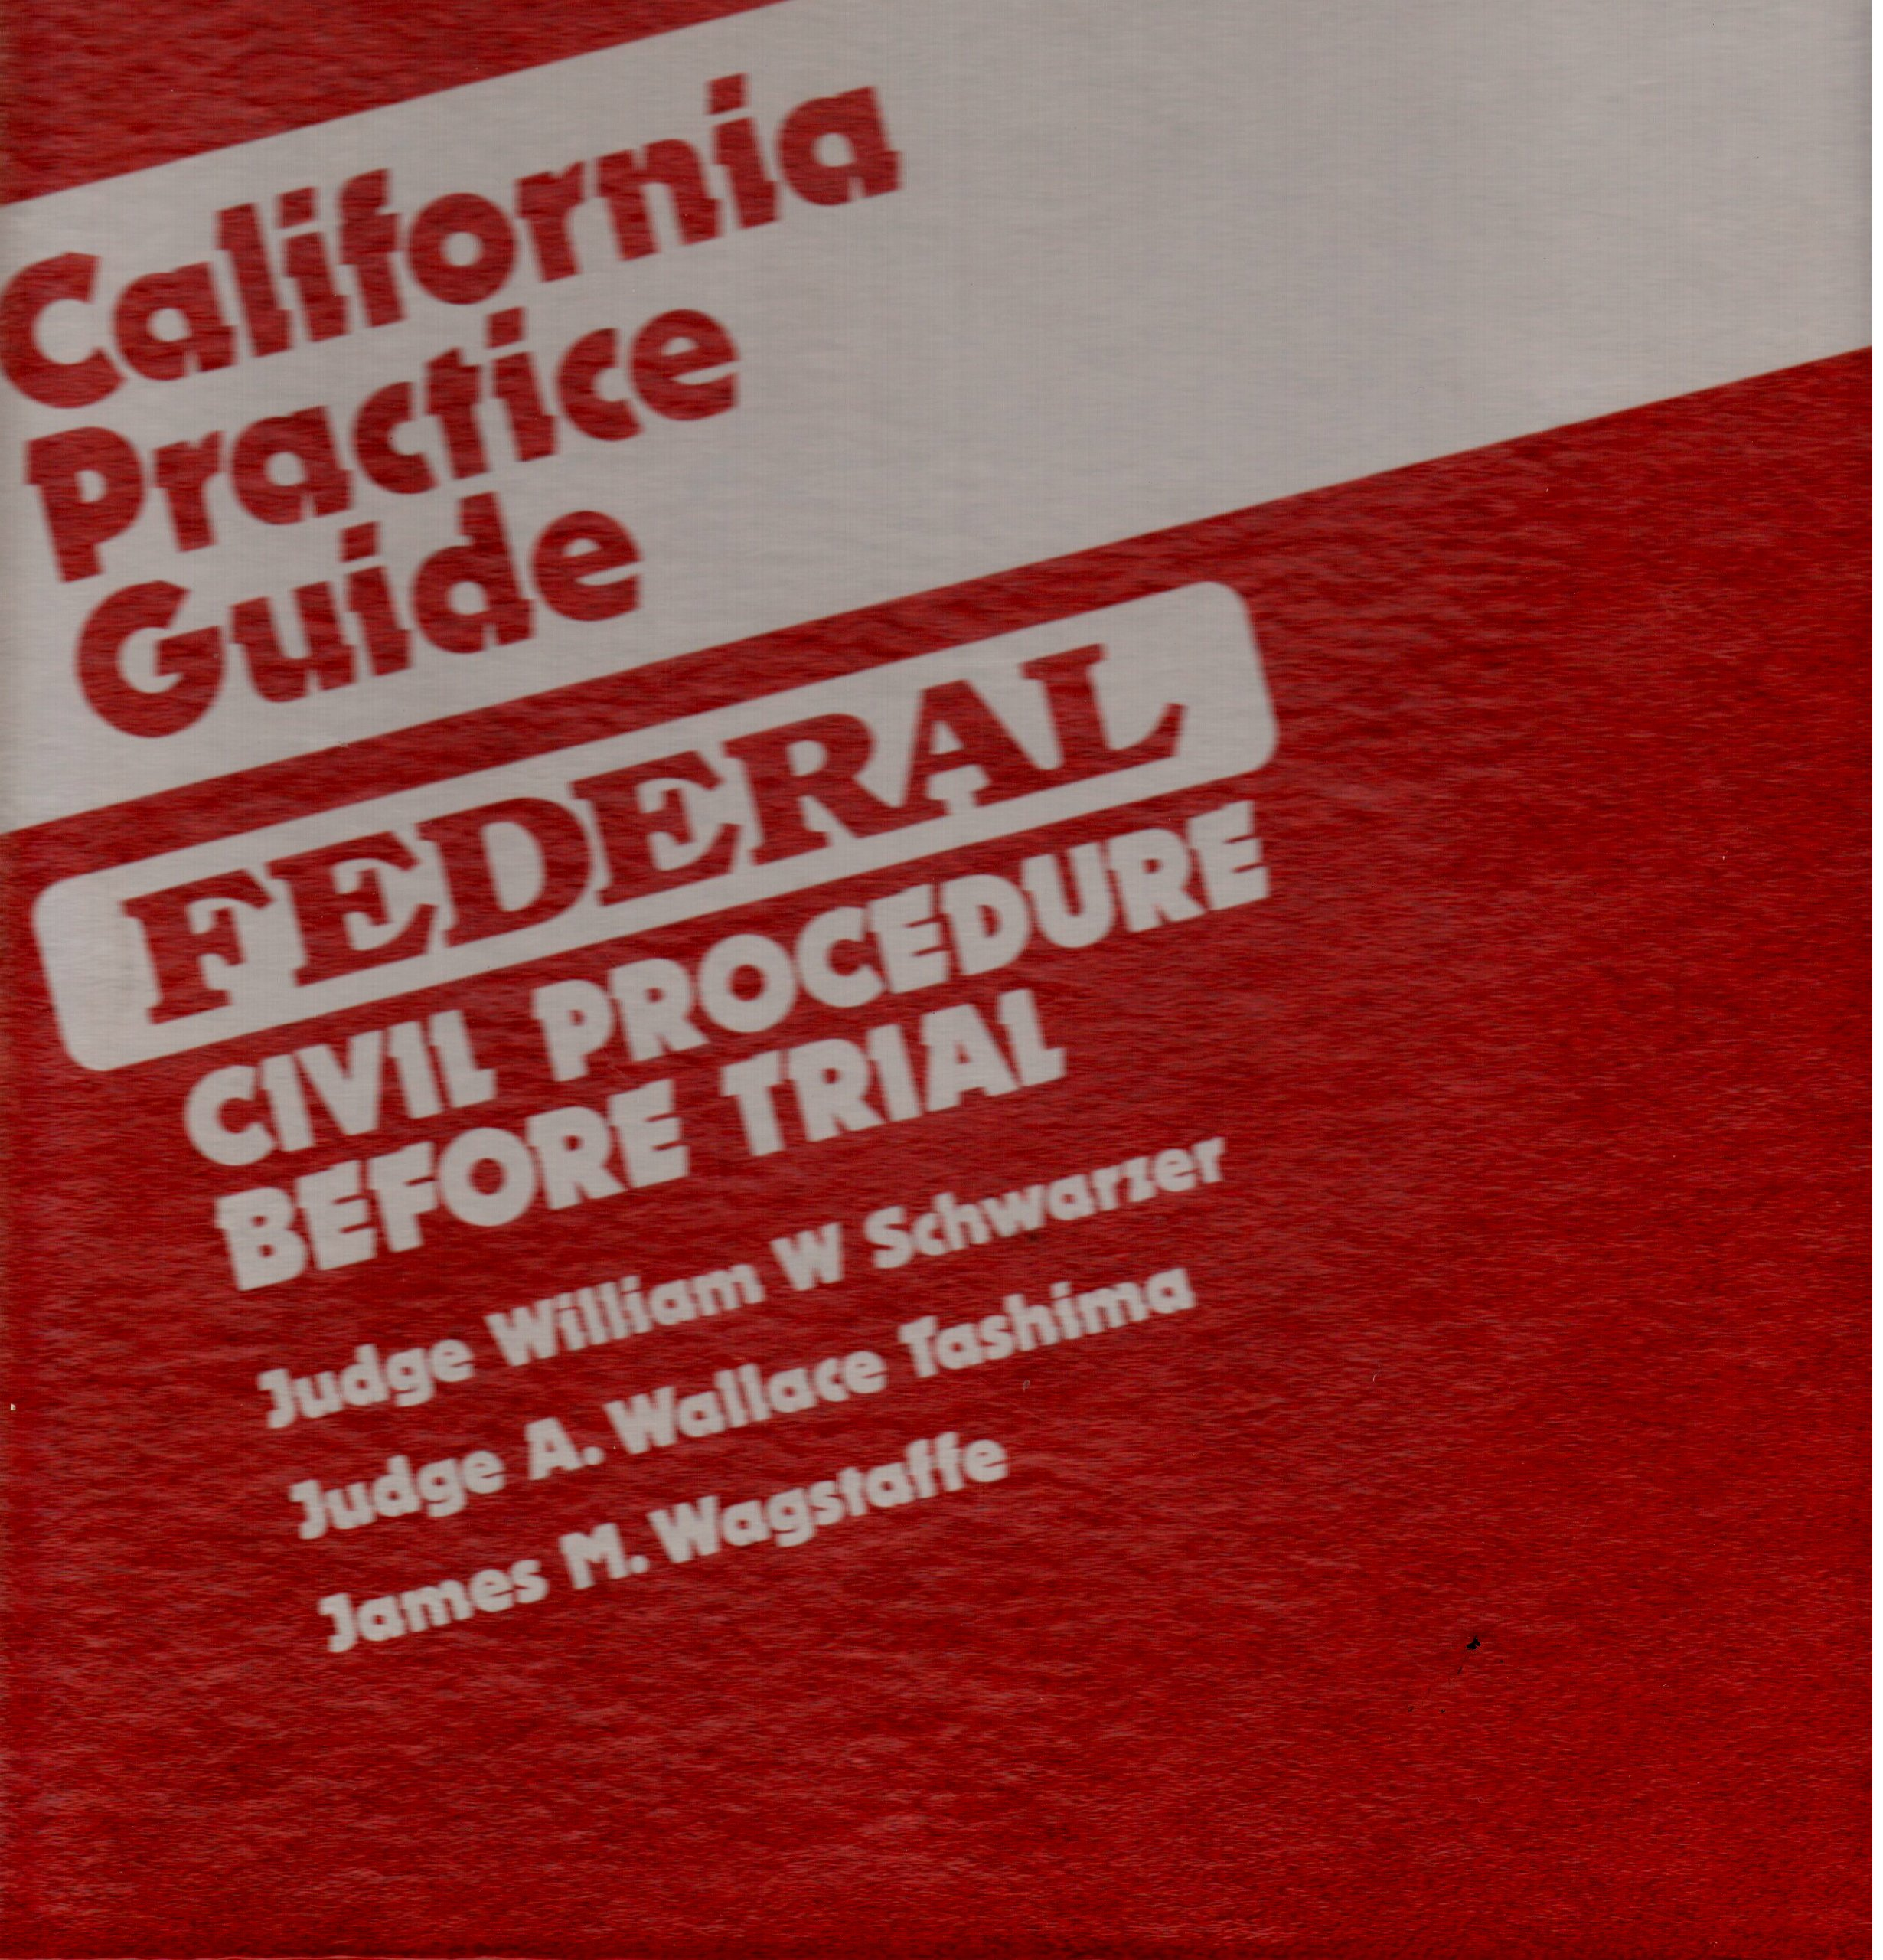 California Practice Guide: Federal Civil Procedure Before Trial (Chapters 12-17, Tables & Index) PDF